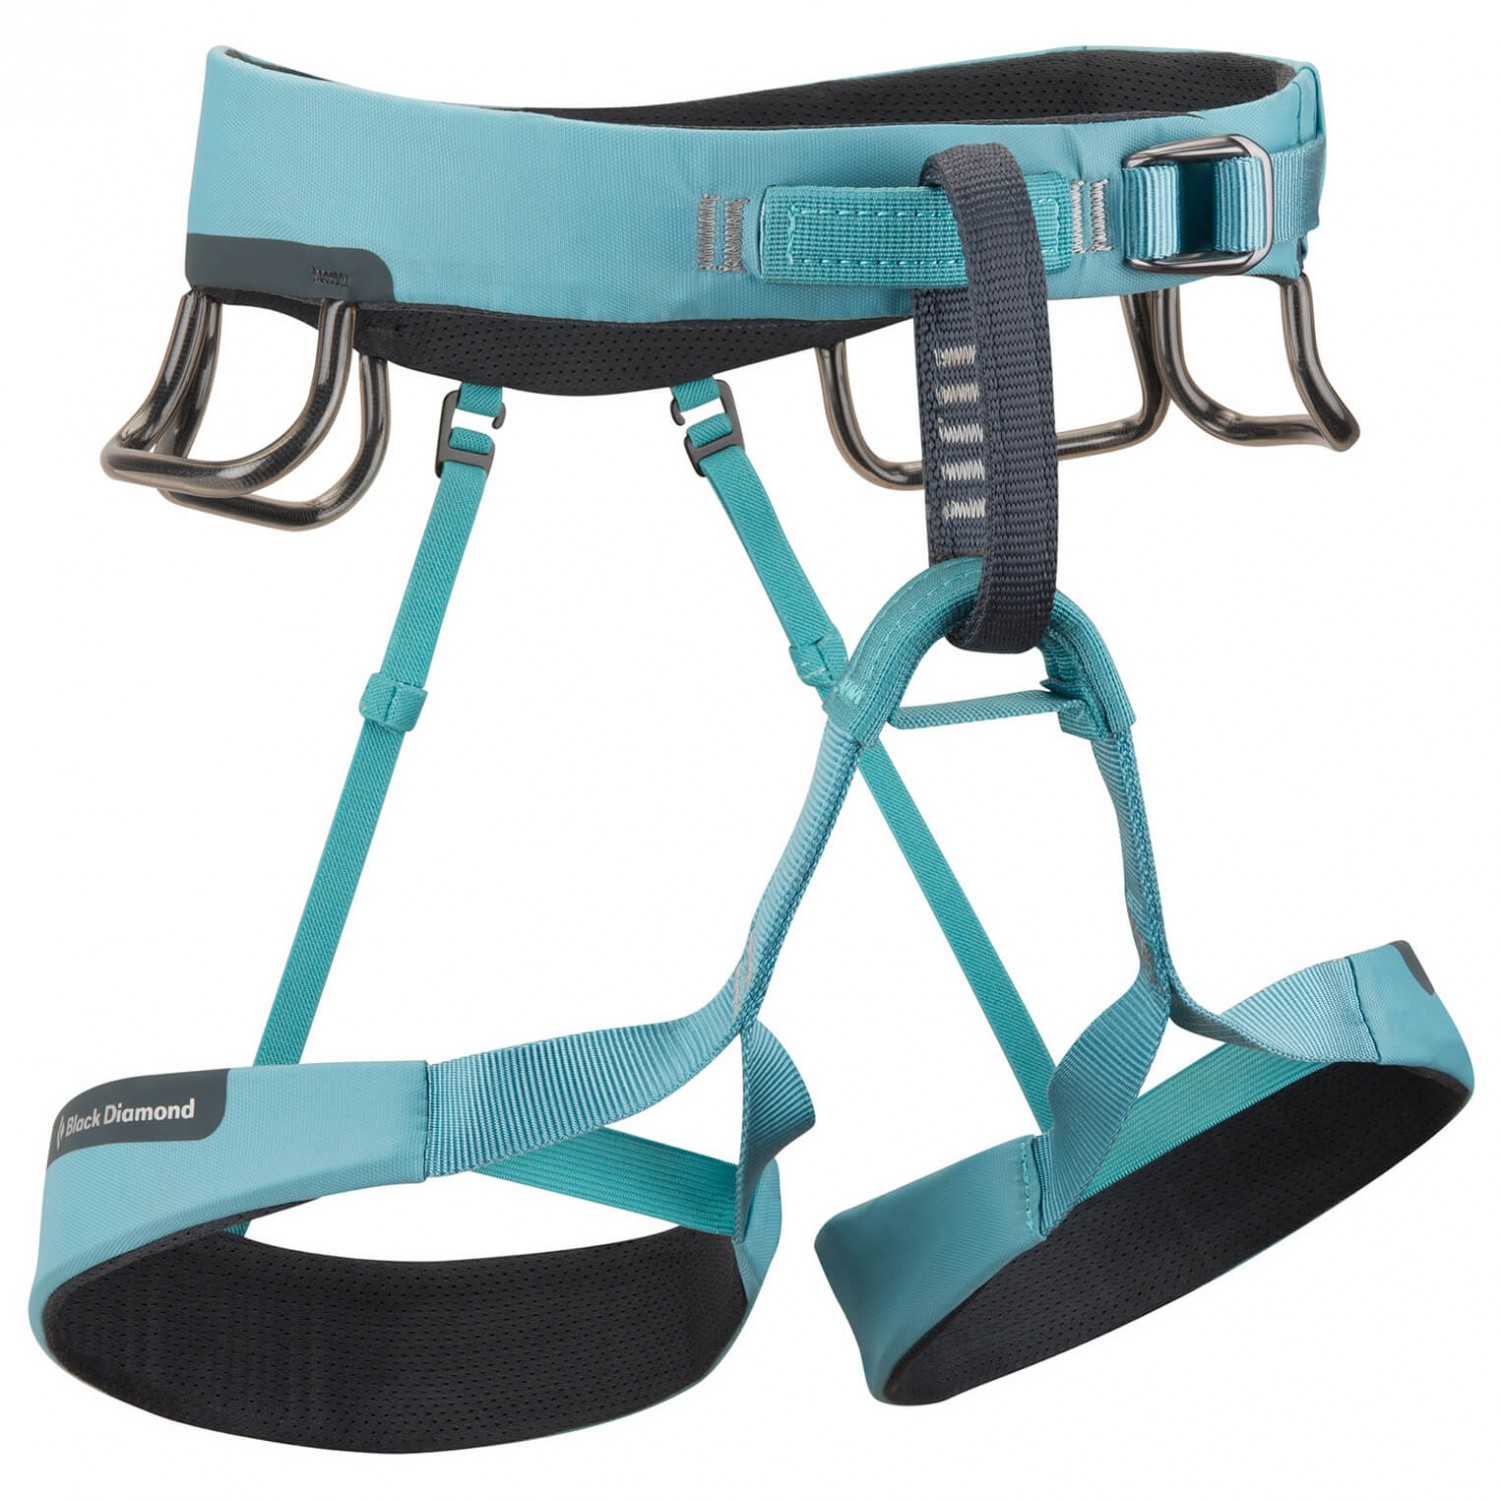 Black Diamond Aura climbing harness